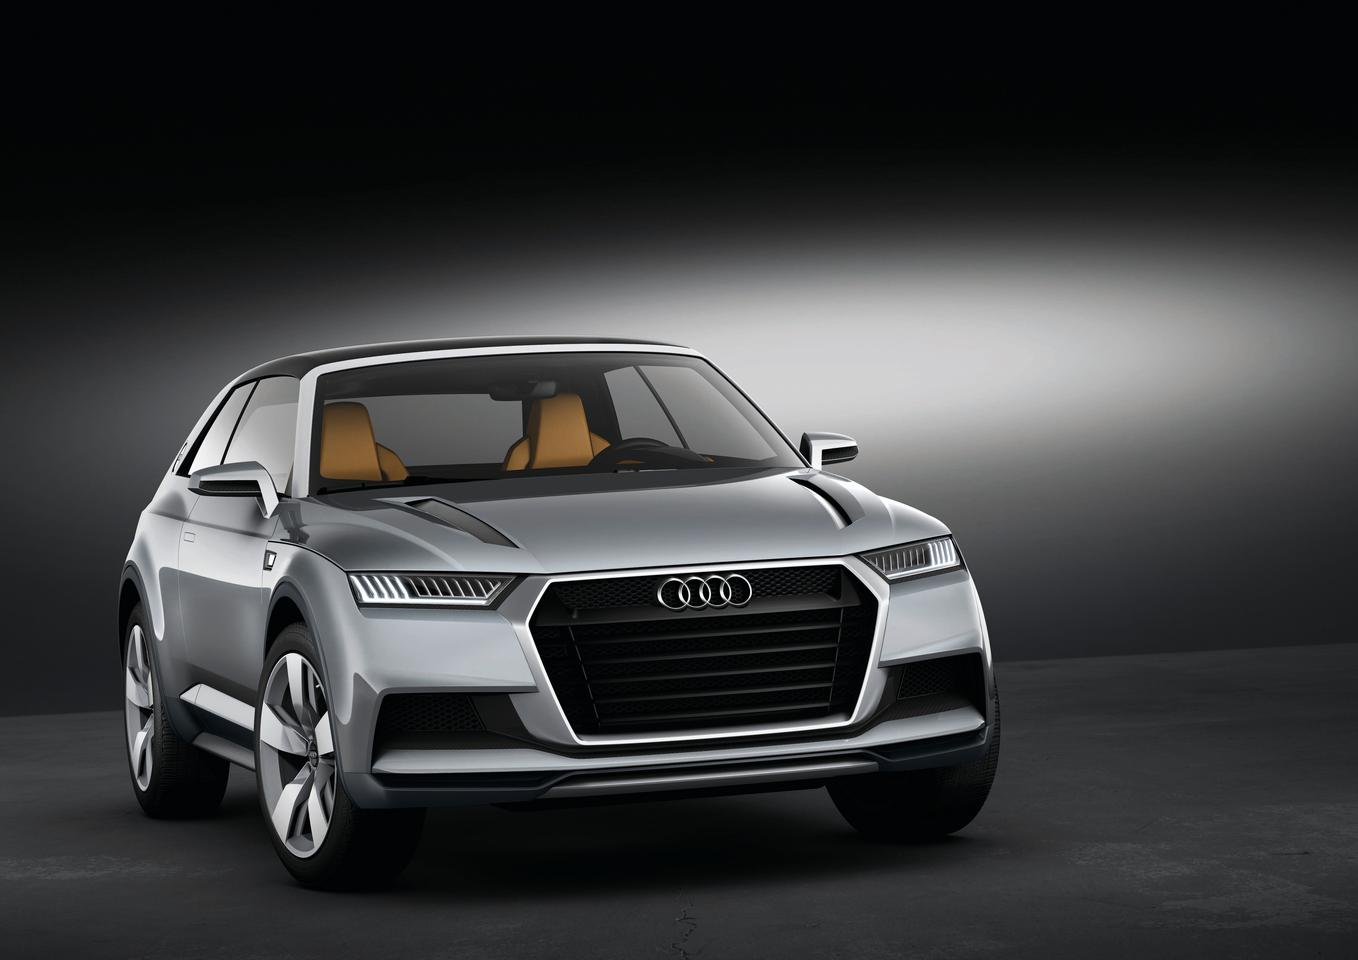 The Audi crosslane coupé concept